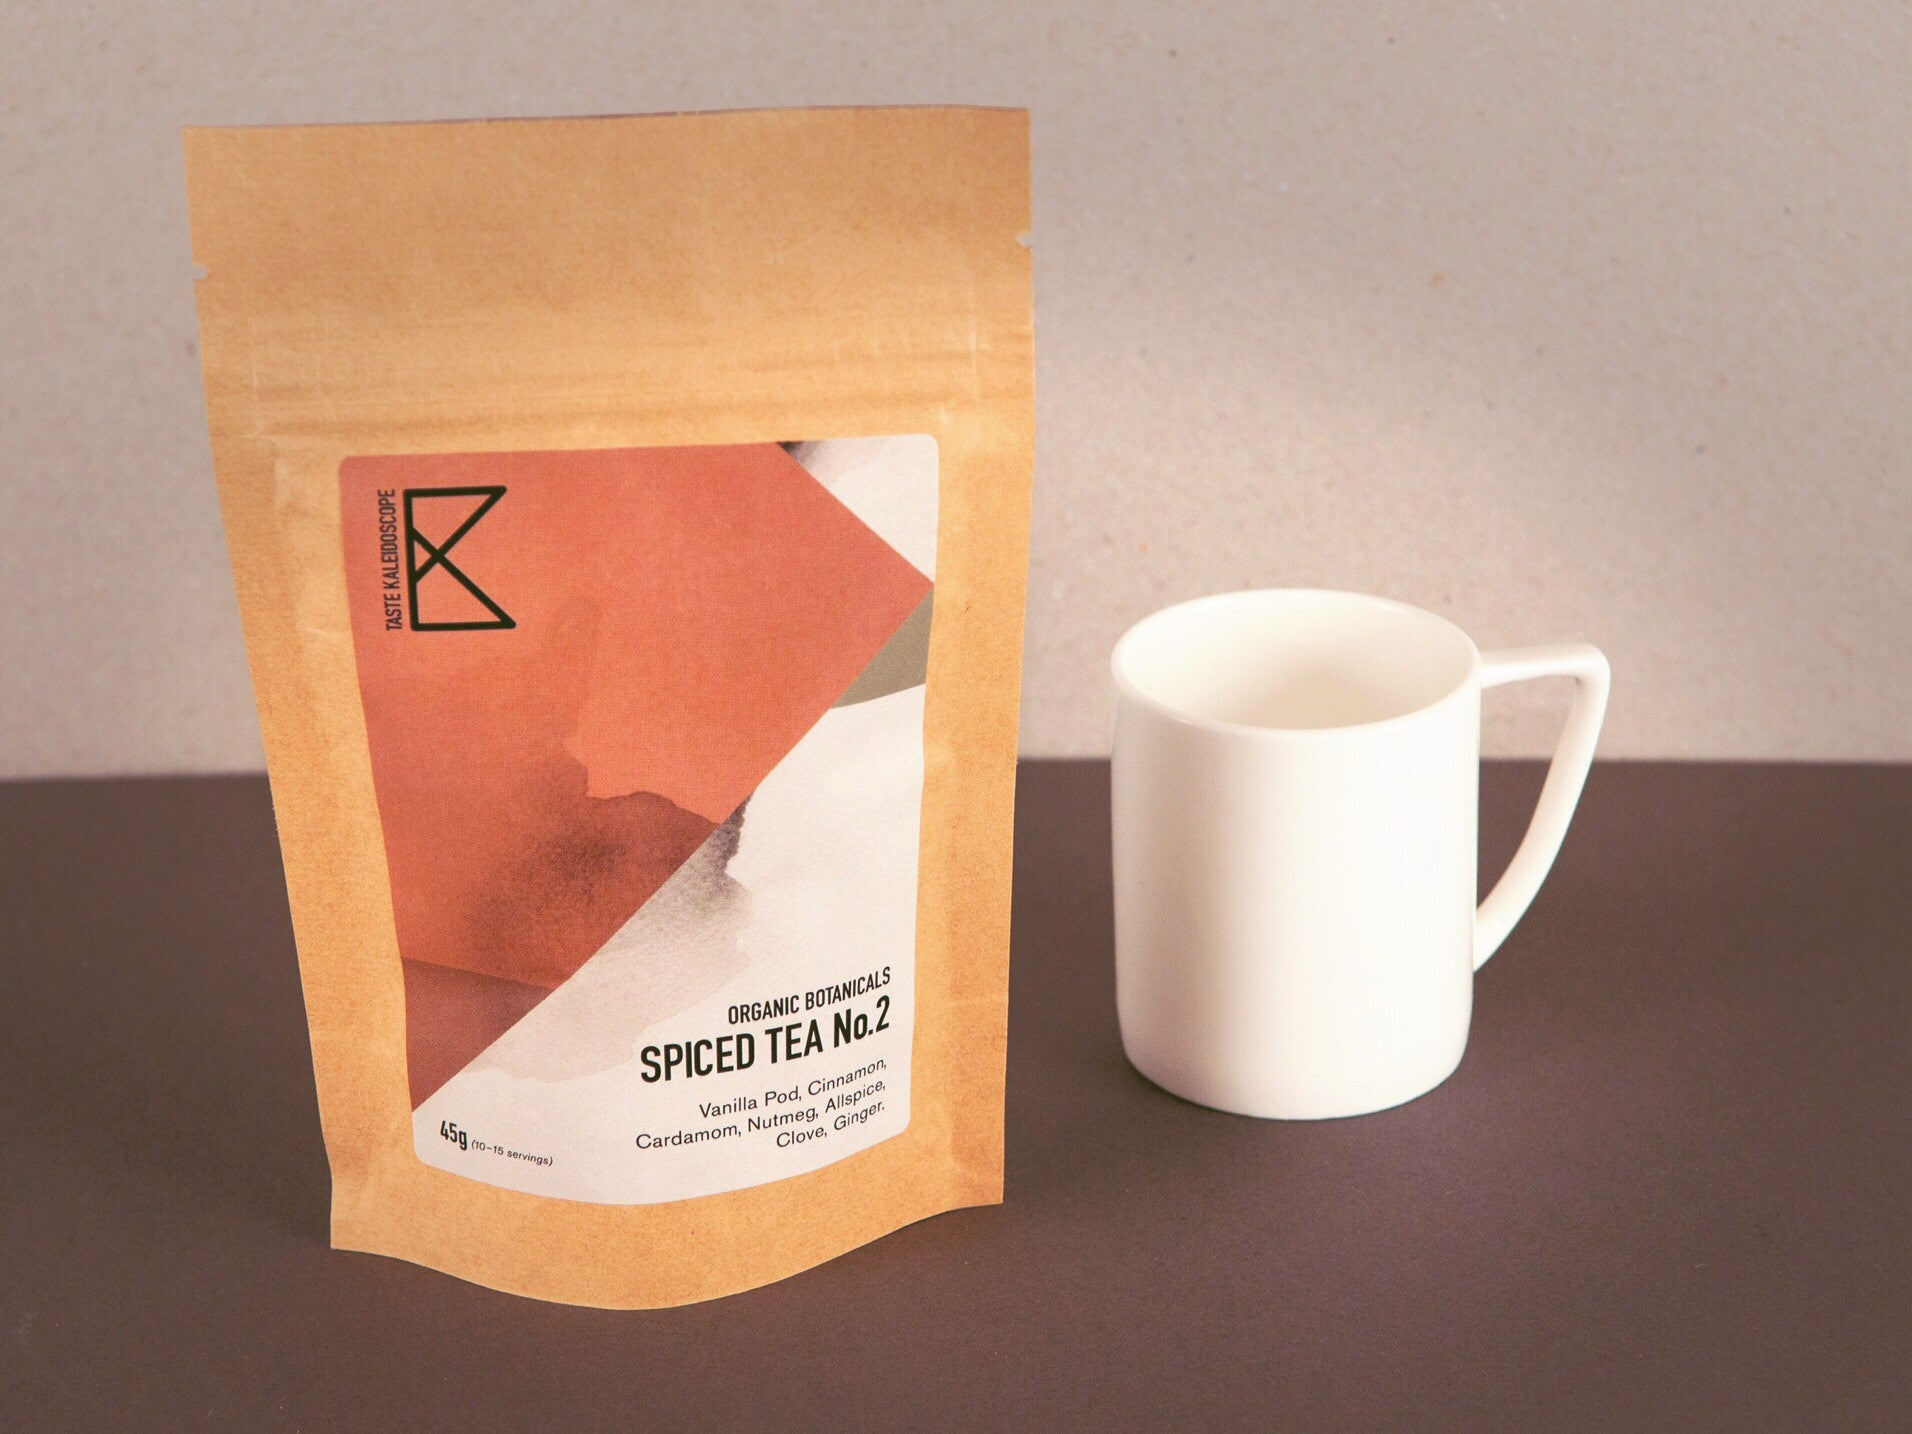 DISCONTINUED UNTIL FURTHER NOTICE Spiced Tea No. 2 - Créme  45g [with Vanilla Pods] - Taste Kaleidoscope